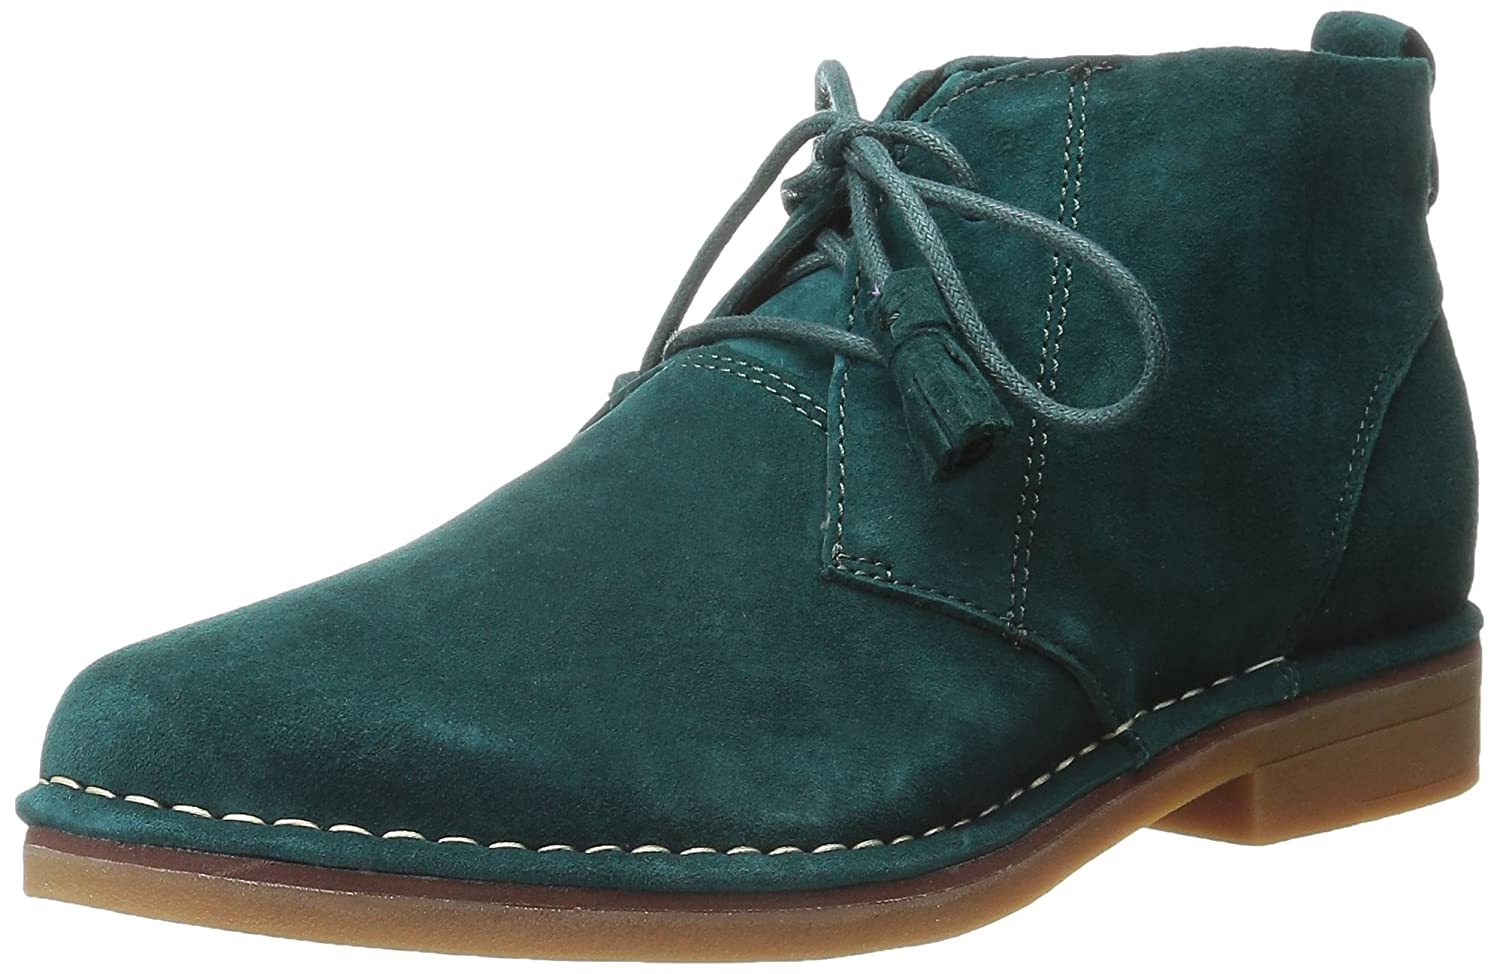 Hush Puppies Women's Cyra Catelyn Boot B00SLTYGFM 8.5 B(M) US|Forest Green